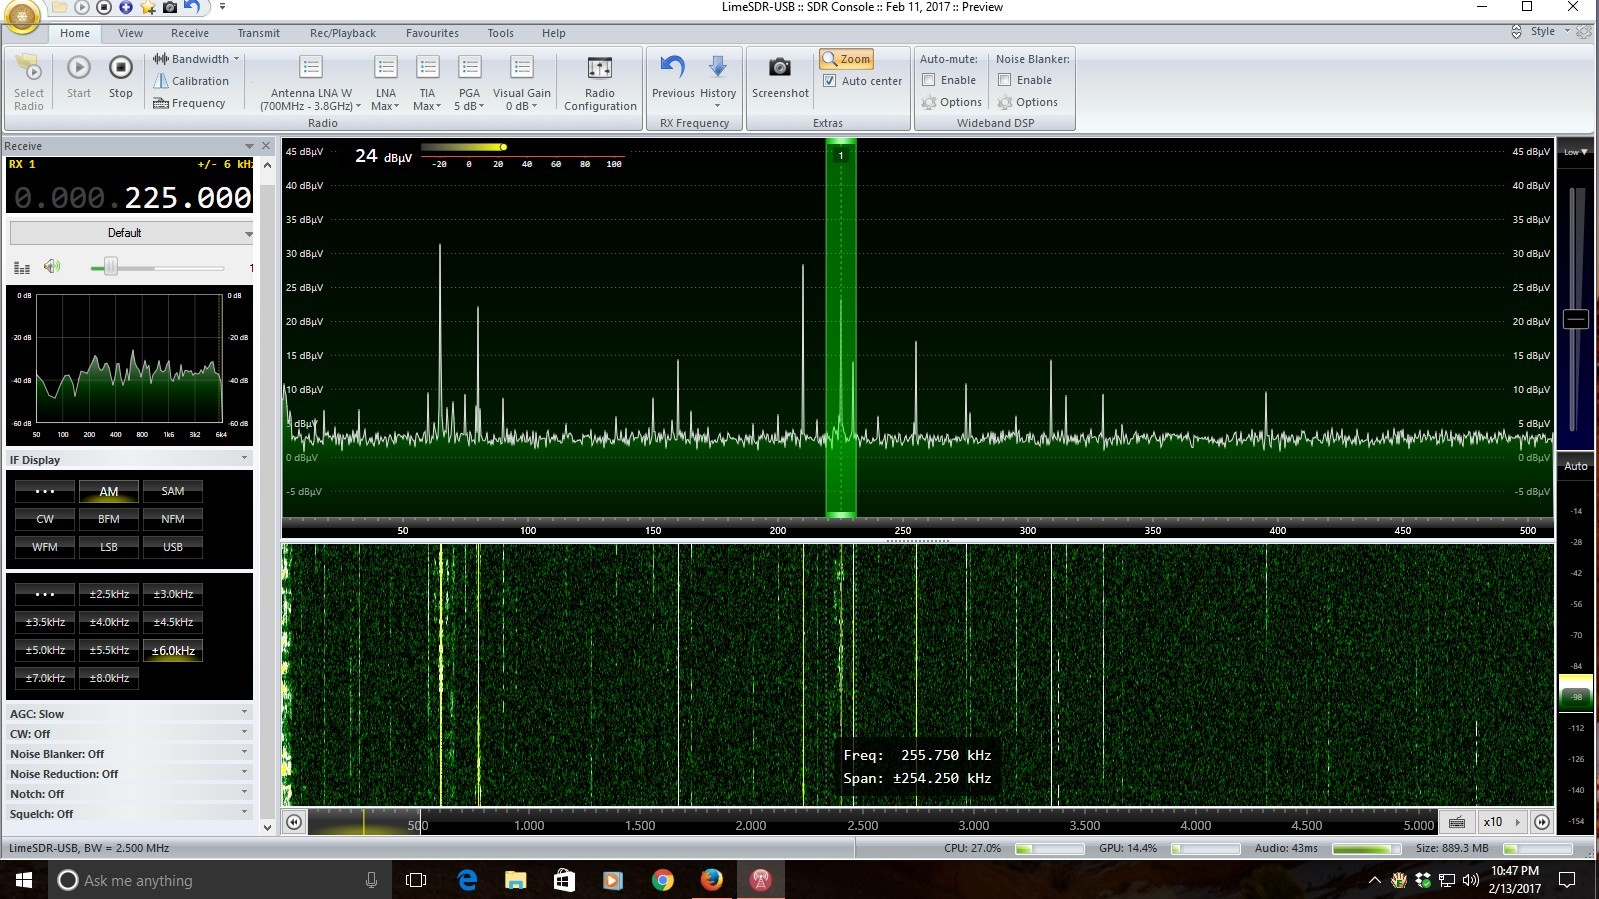 Happy days are here again - LimeSDR lives in HF! - LimeSDR